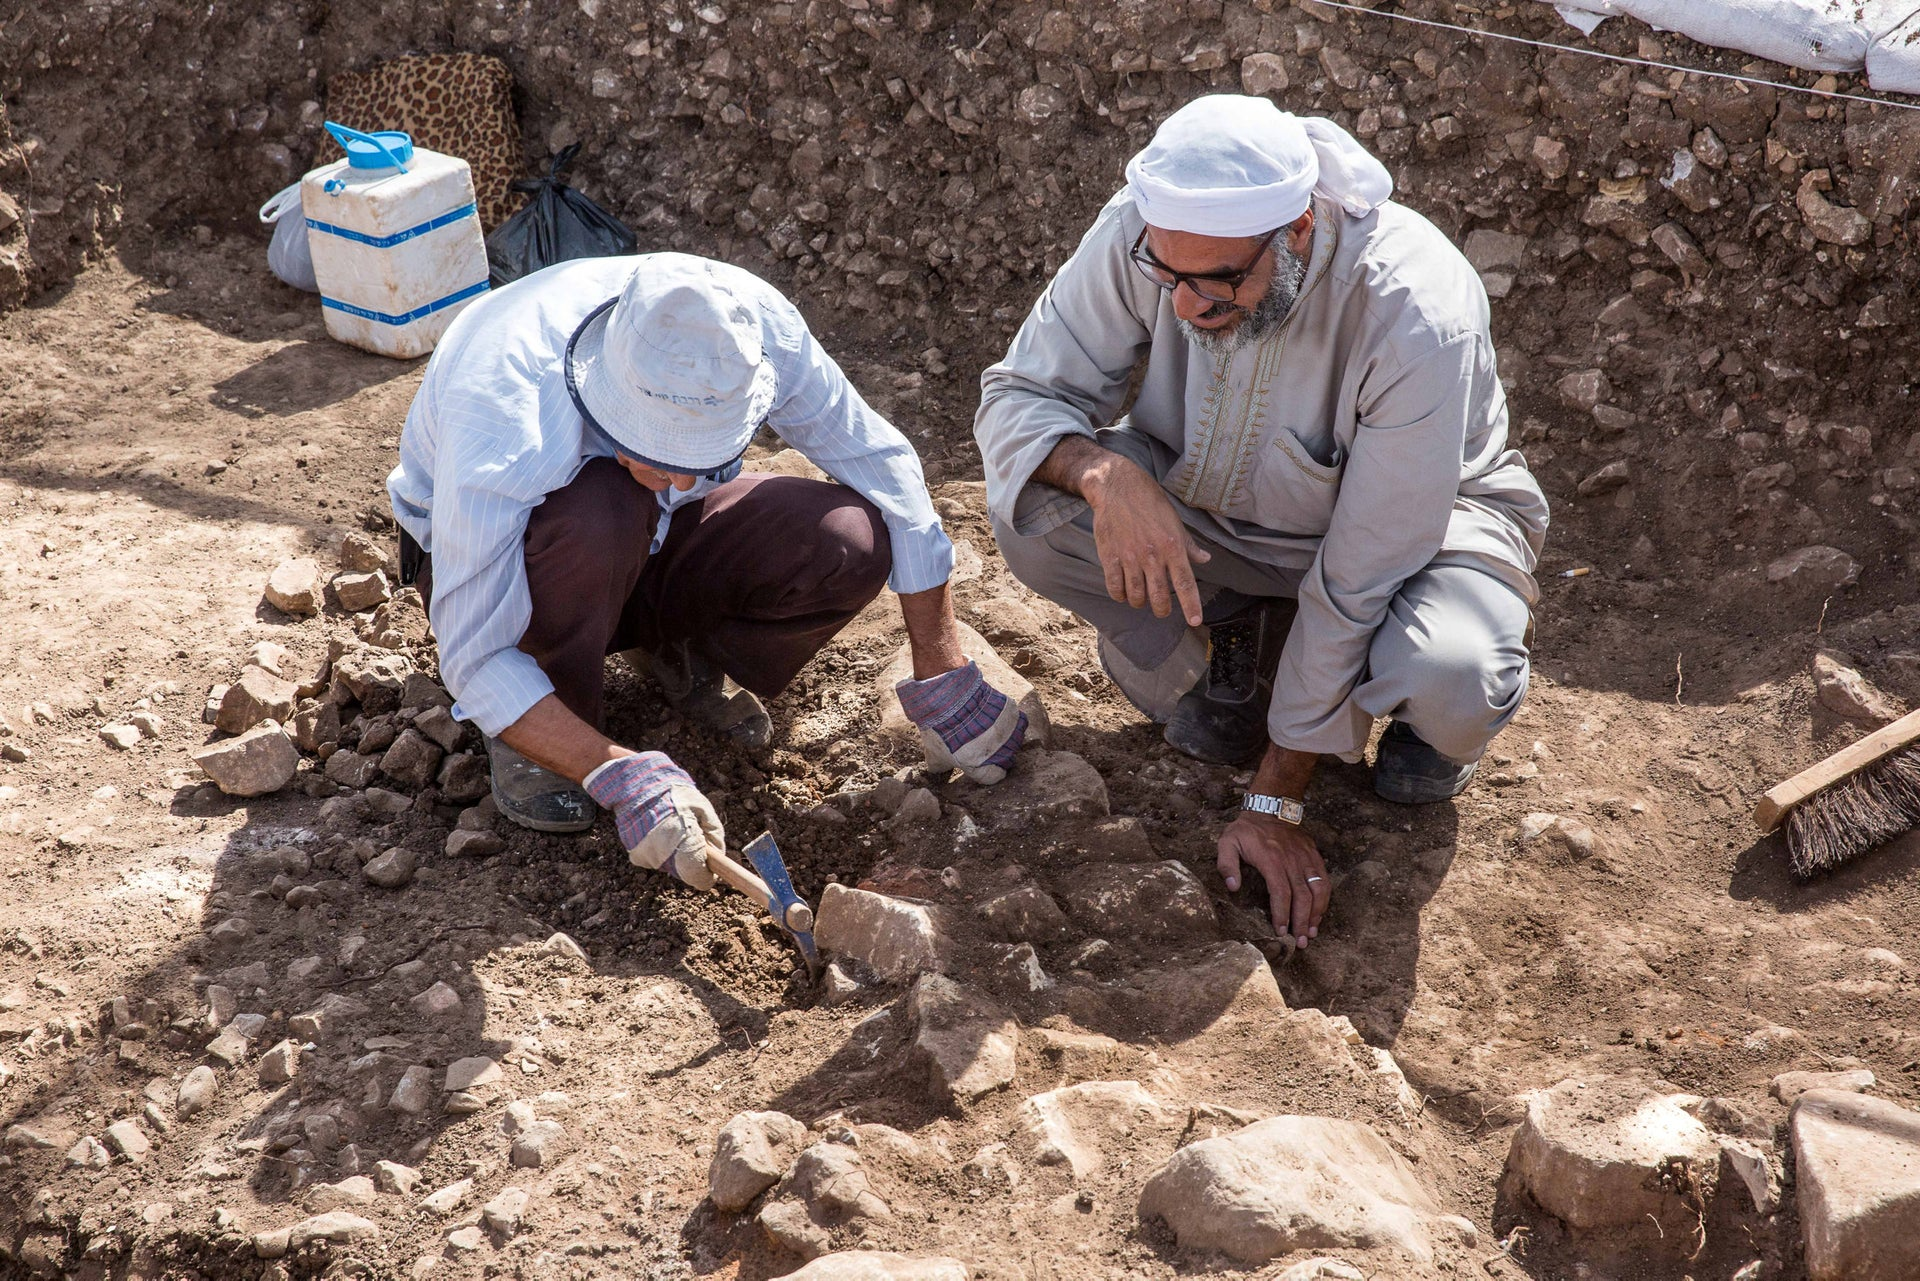 Archaeological dig at Motza: 9,000-year-old Neolithic village. Photo shows two men wearing hats against the heat, digging.